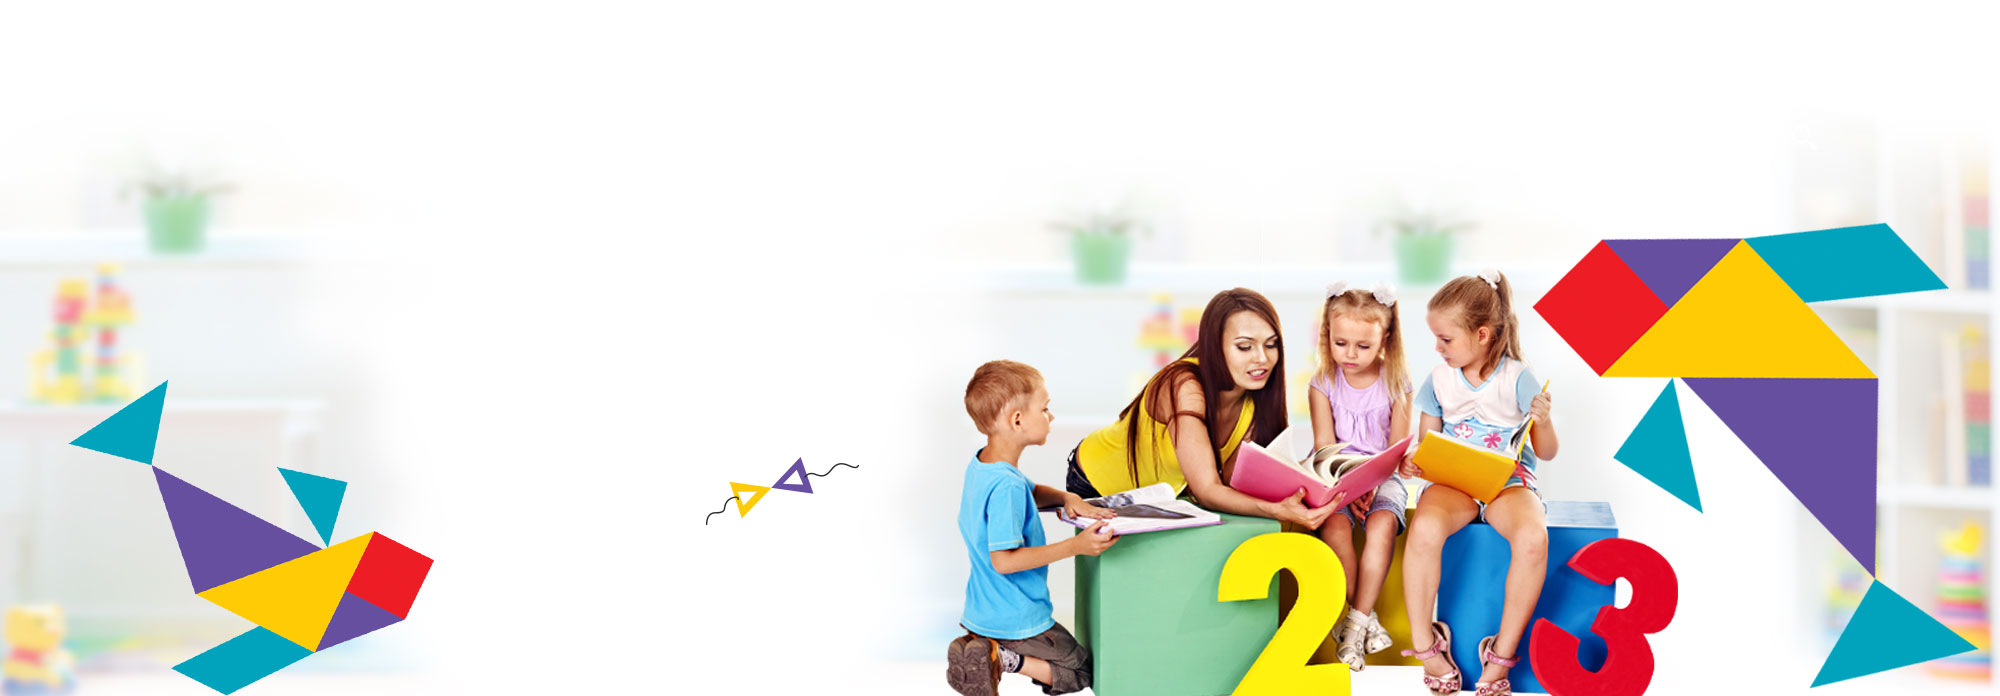 i-Maths_Education_Franchise_Opportunities_in_Canada_1